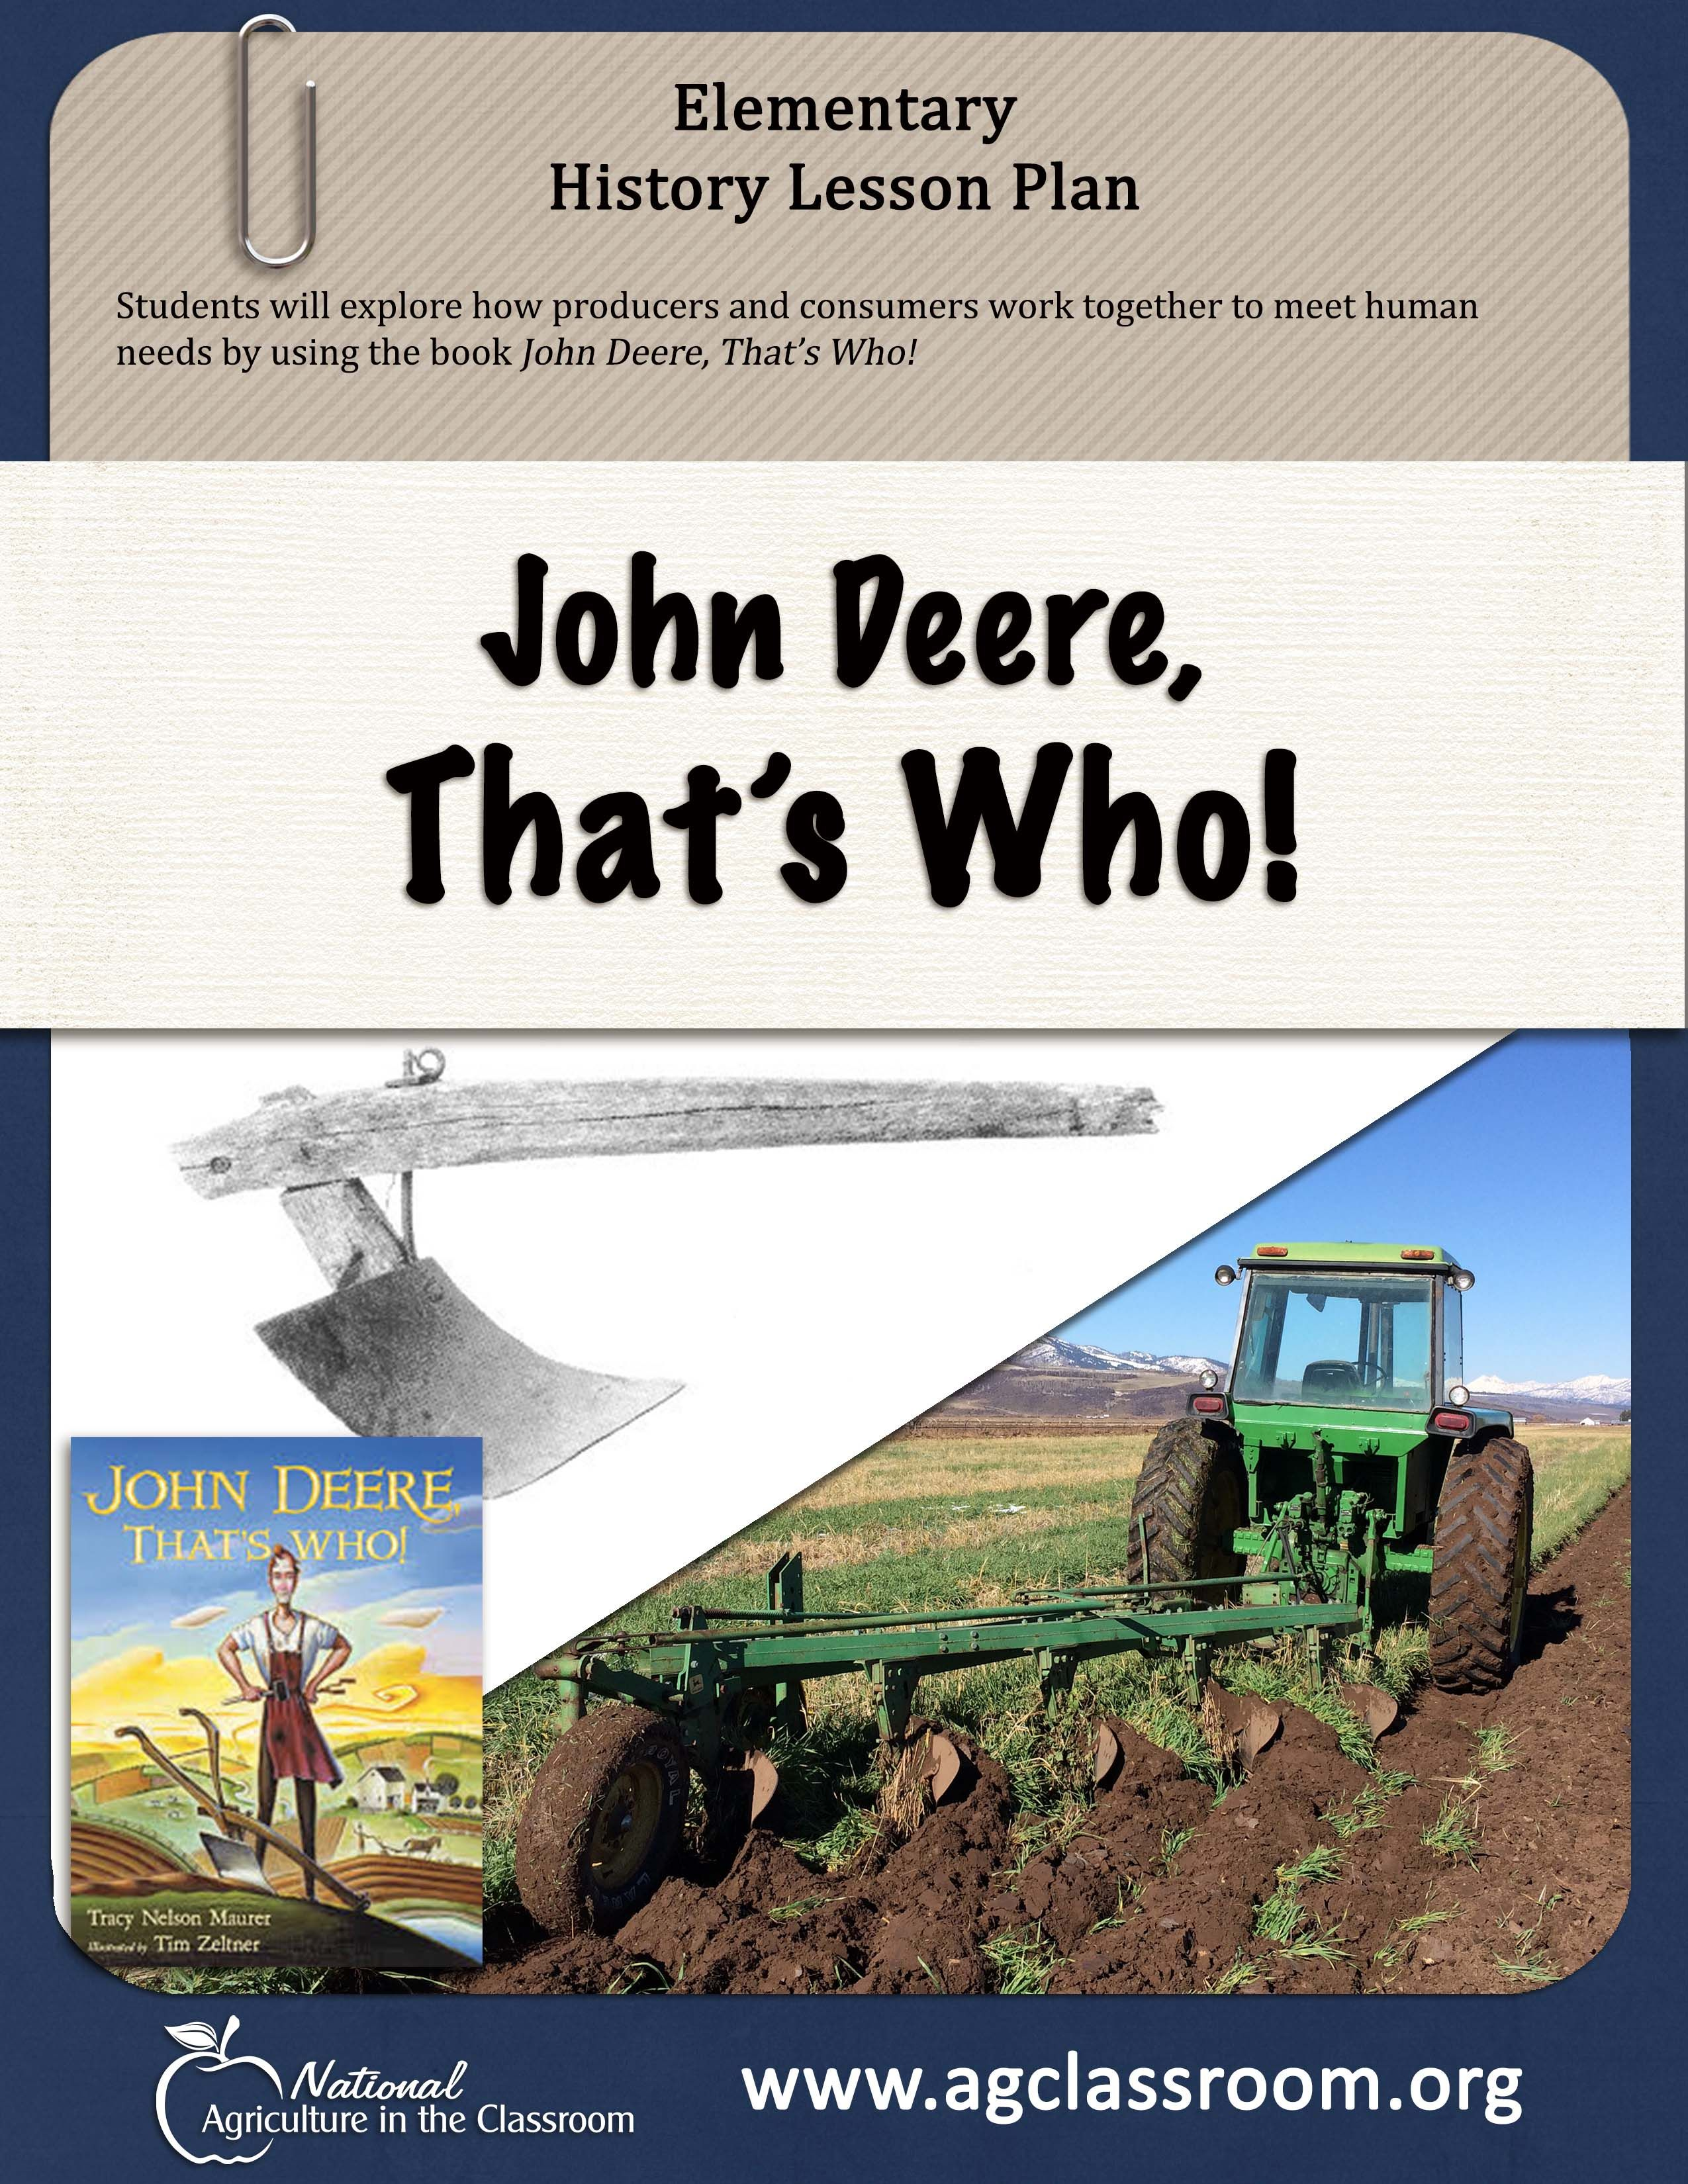 medium resolution of elementary lesson plan teaching about producers and consumers using john deere a blacksmith who invented the the first steel plow as an example